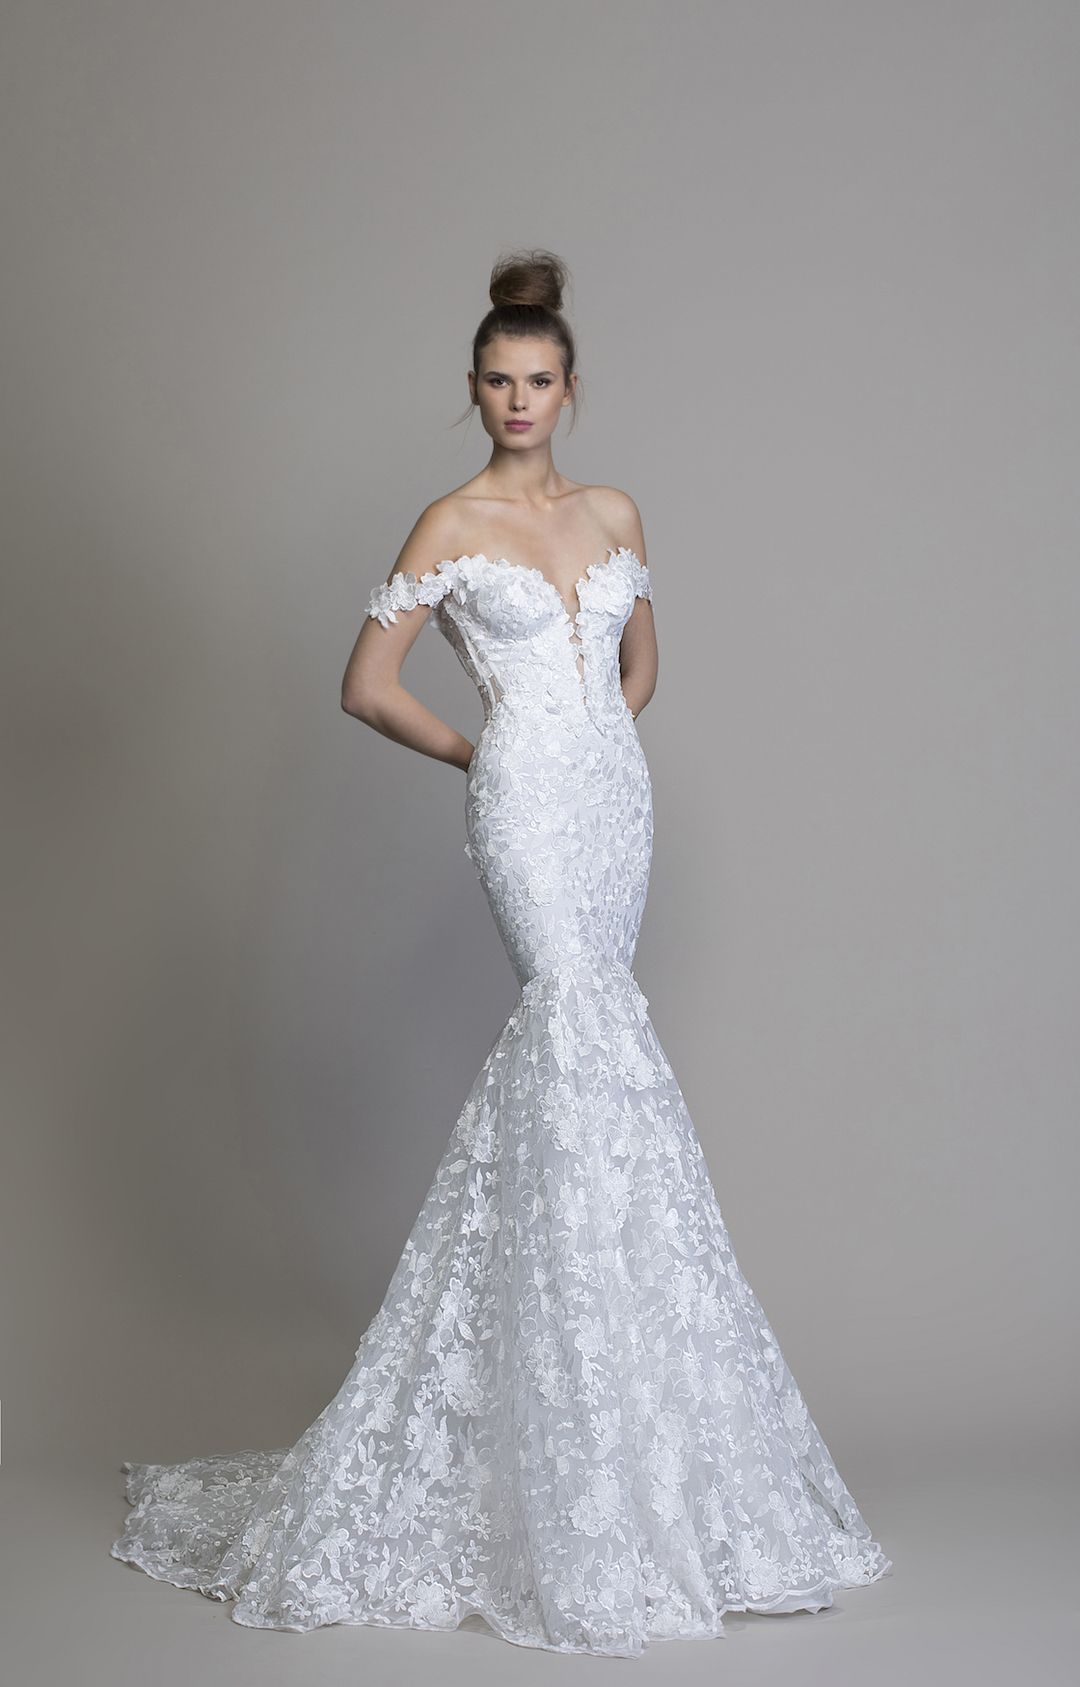 Introducing The Love By Pnina Tornai 2020 Collection Kleinfeld Bridal In 2020 Pnina Tornai Wedding Dress Wedding Dresses Mermaid Wedding Dress